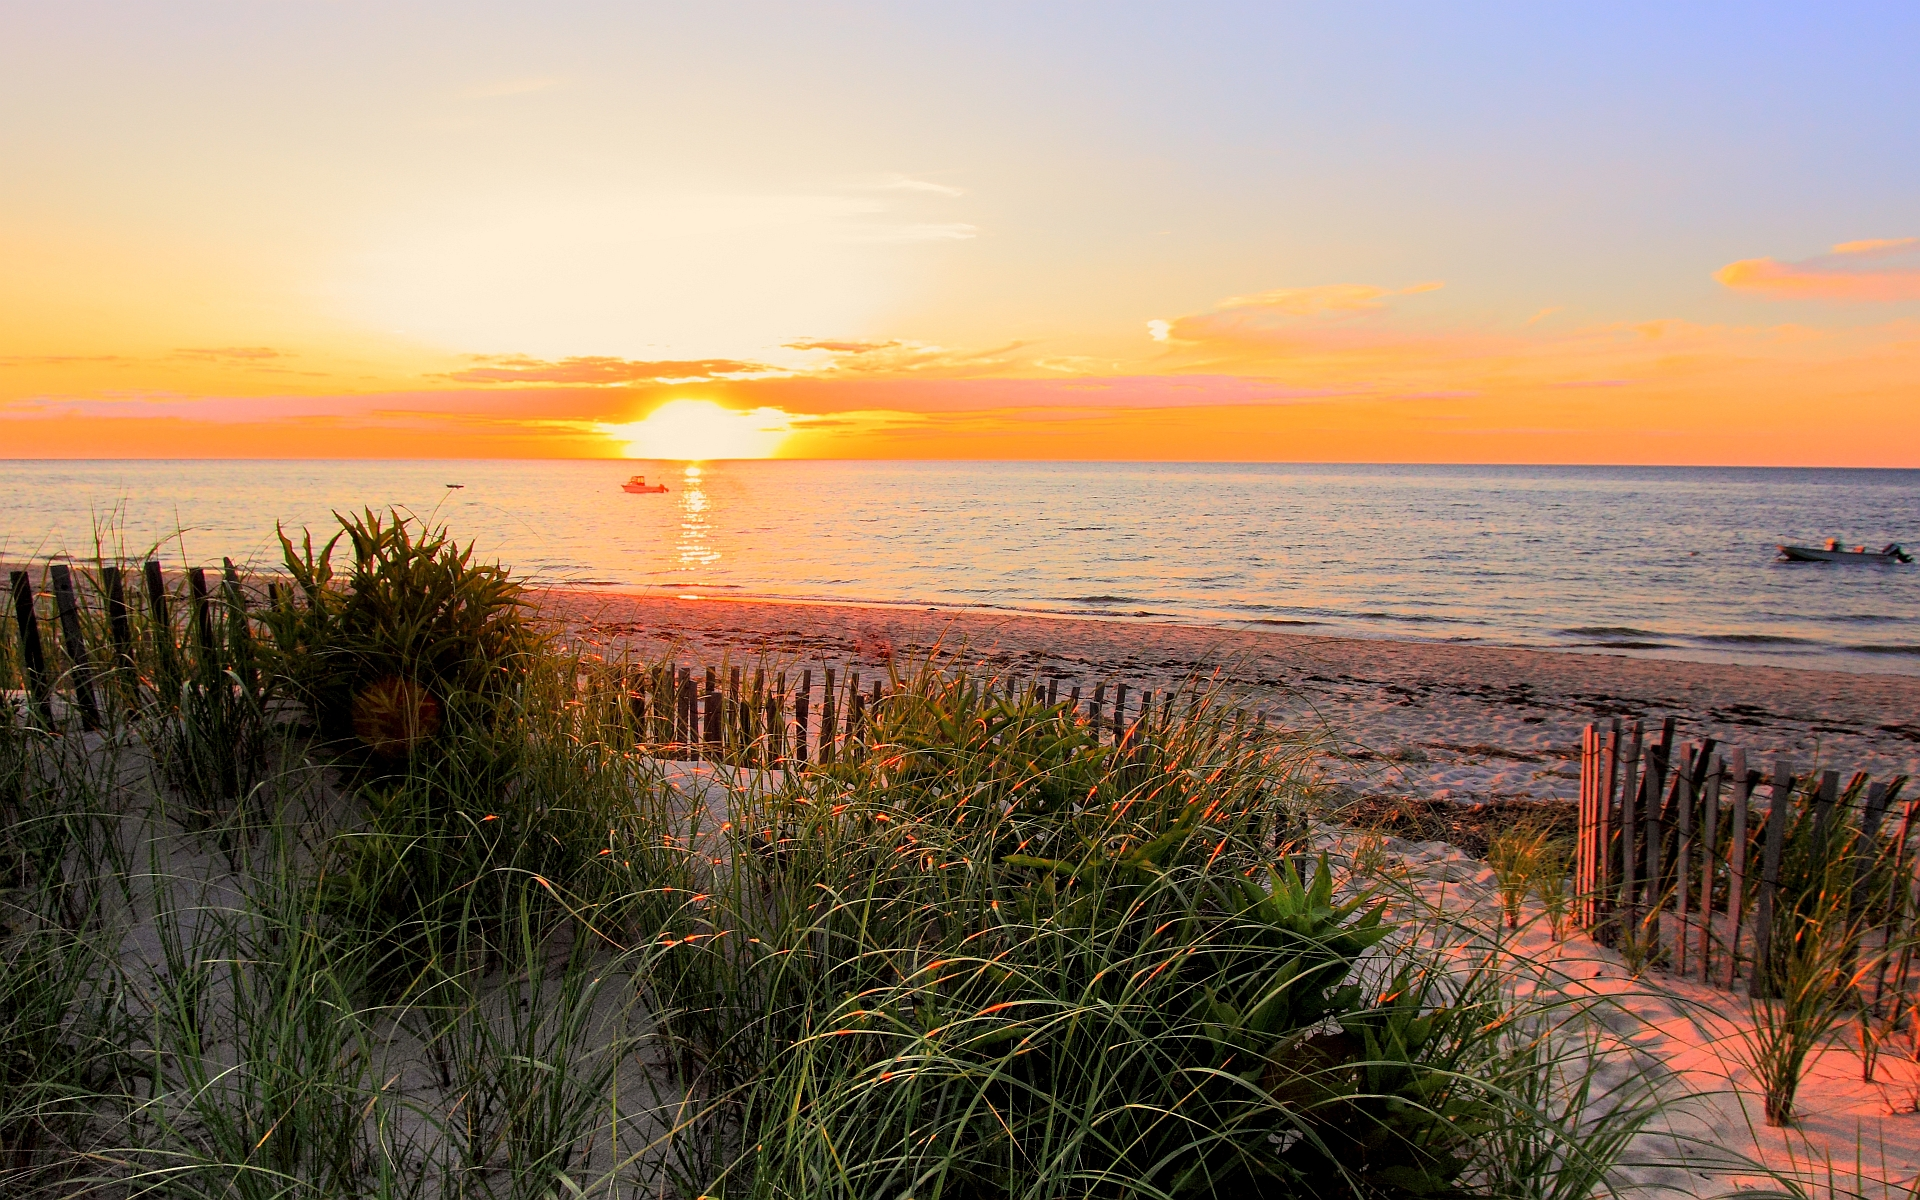 Cape Cod Desktop Wallpaper - WallpaperSafari